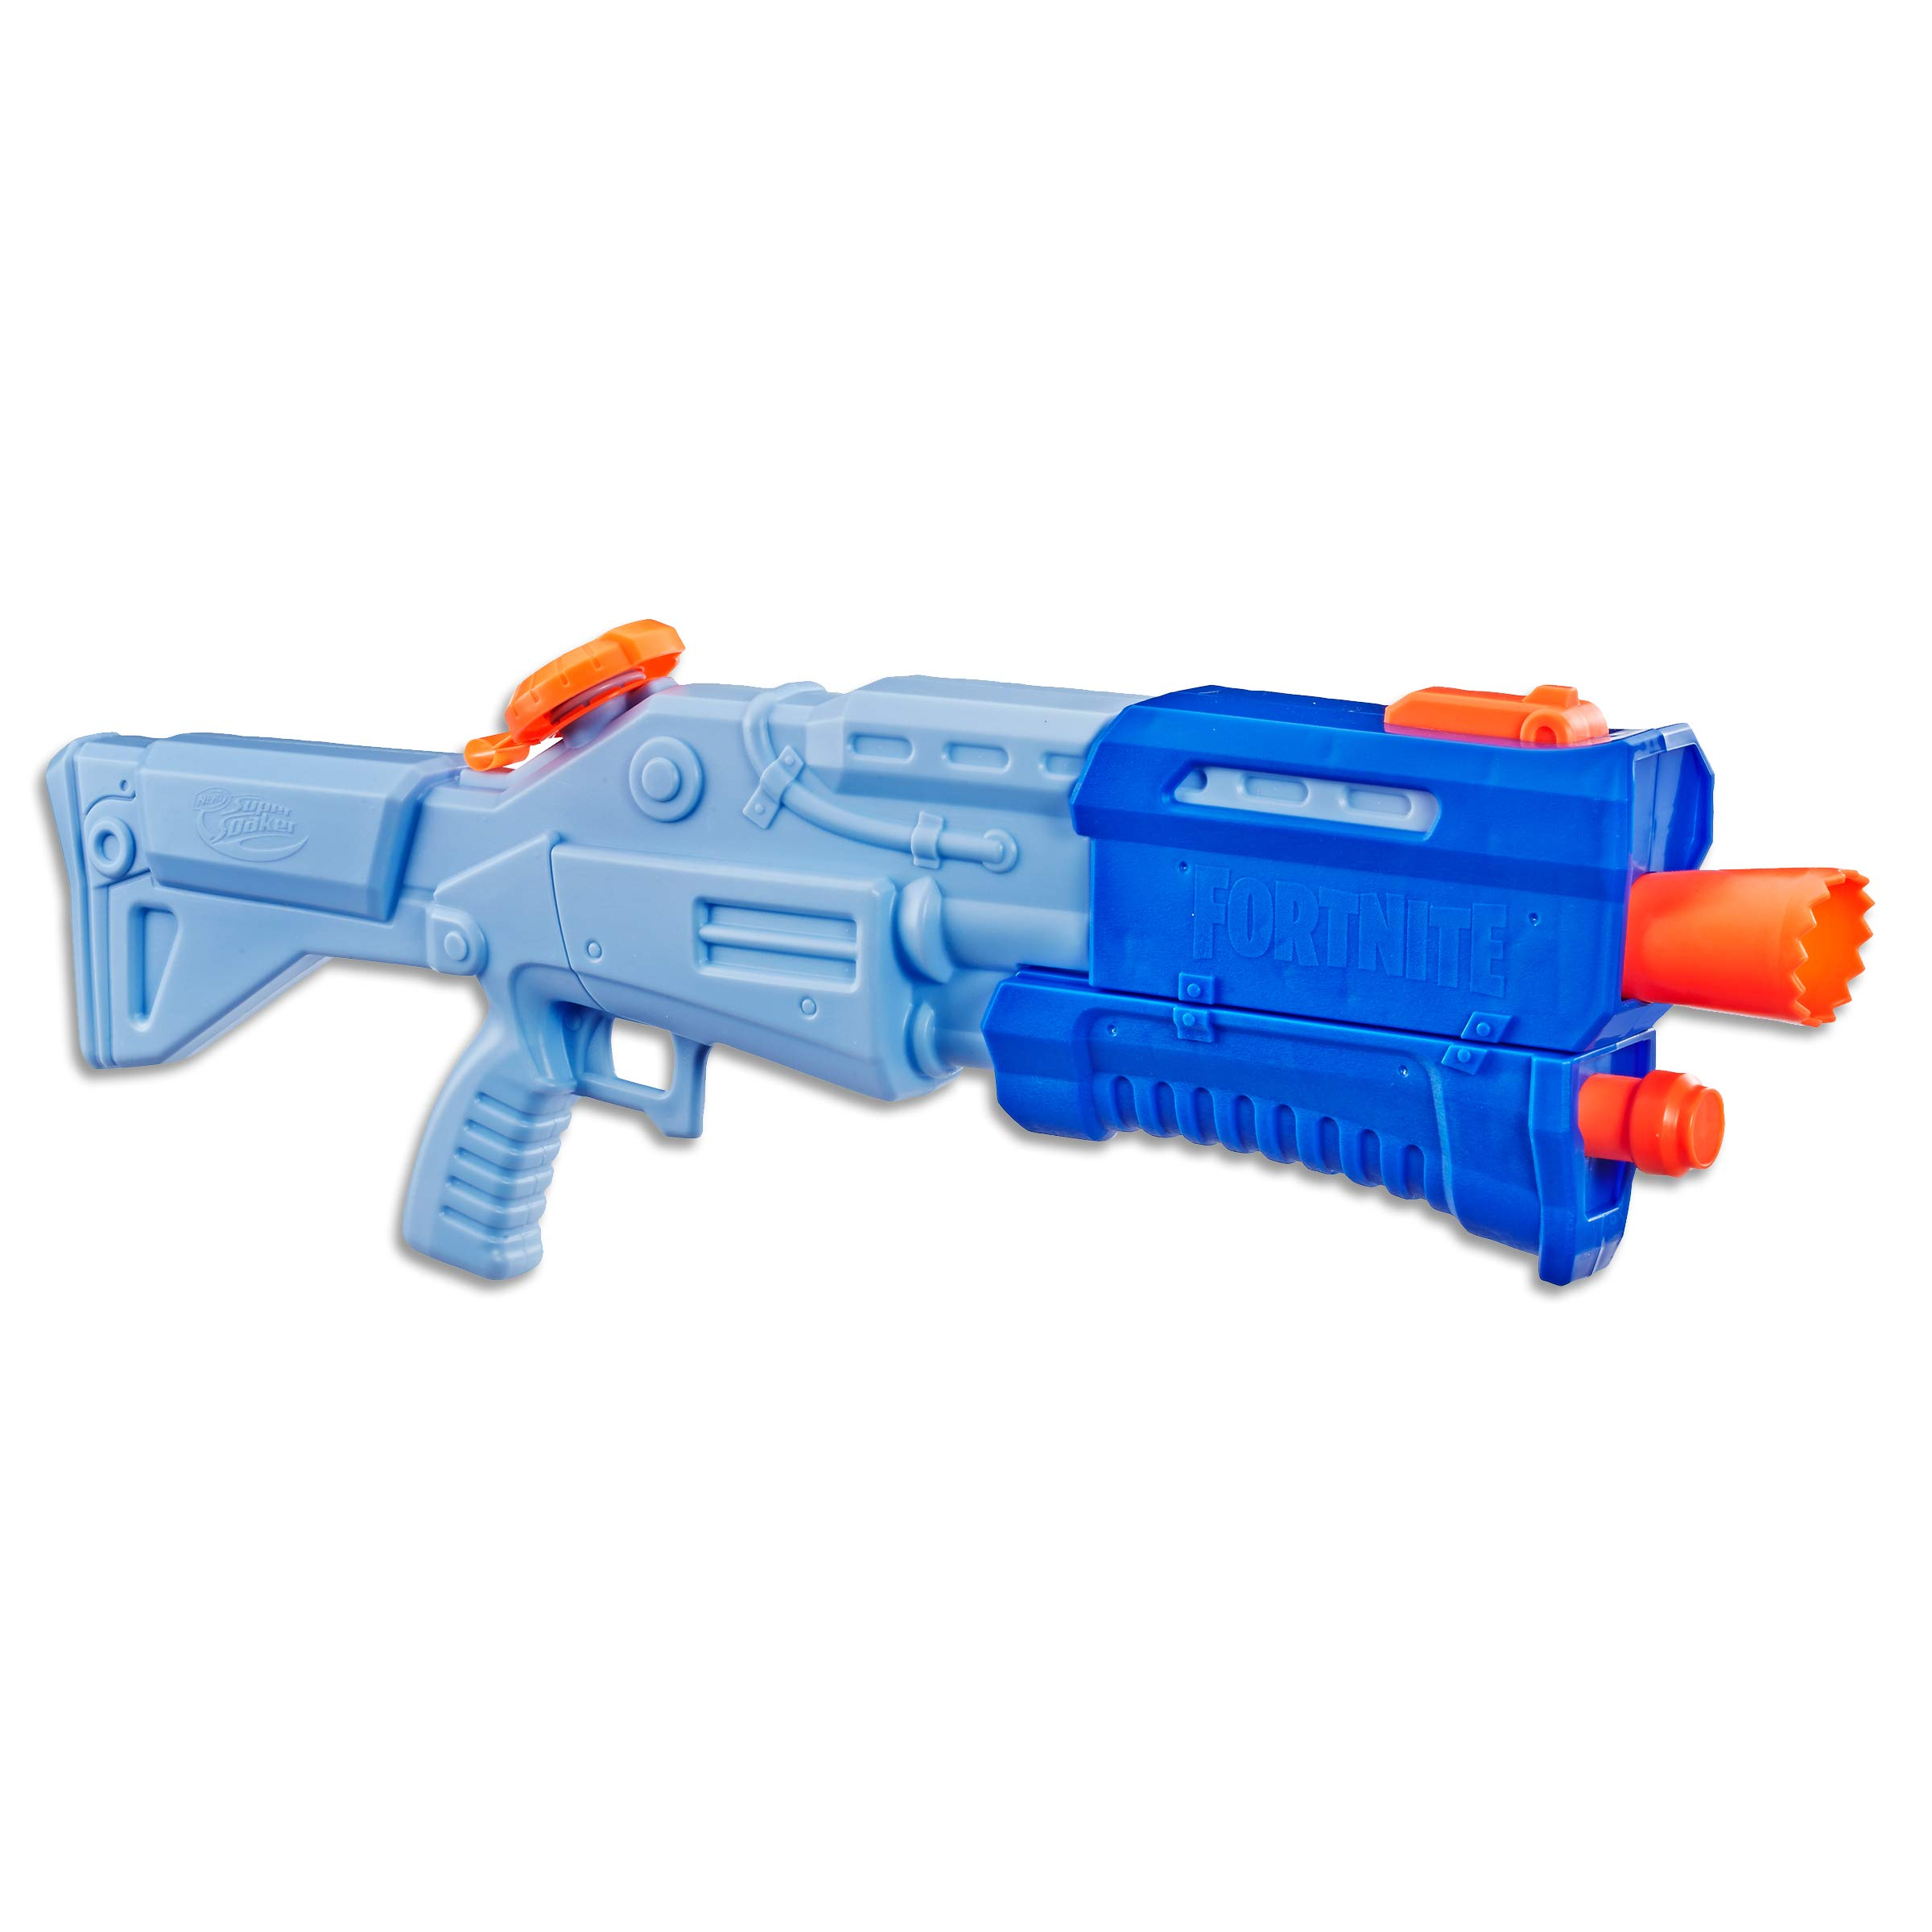 NERF Fortnite TS-R Super Soaker Water Blaster Toy by NERF